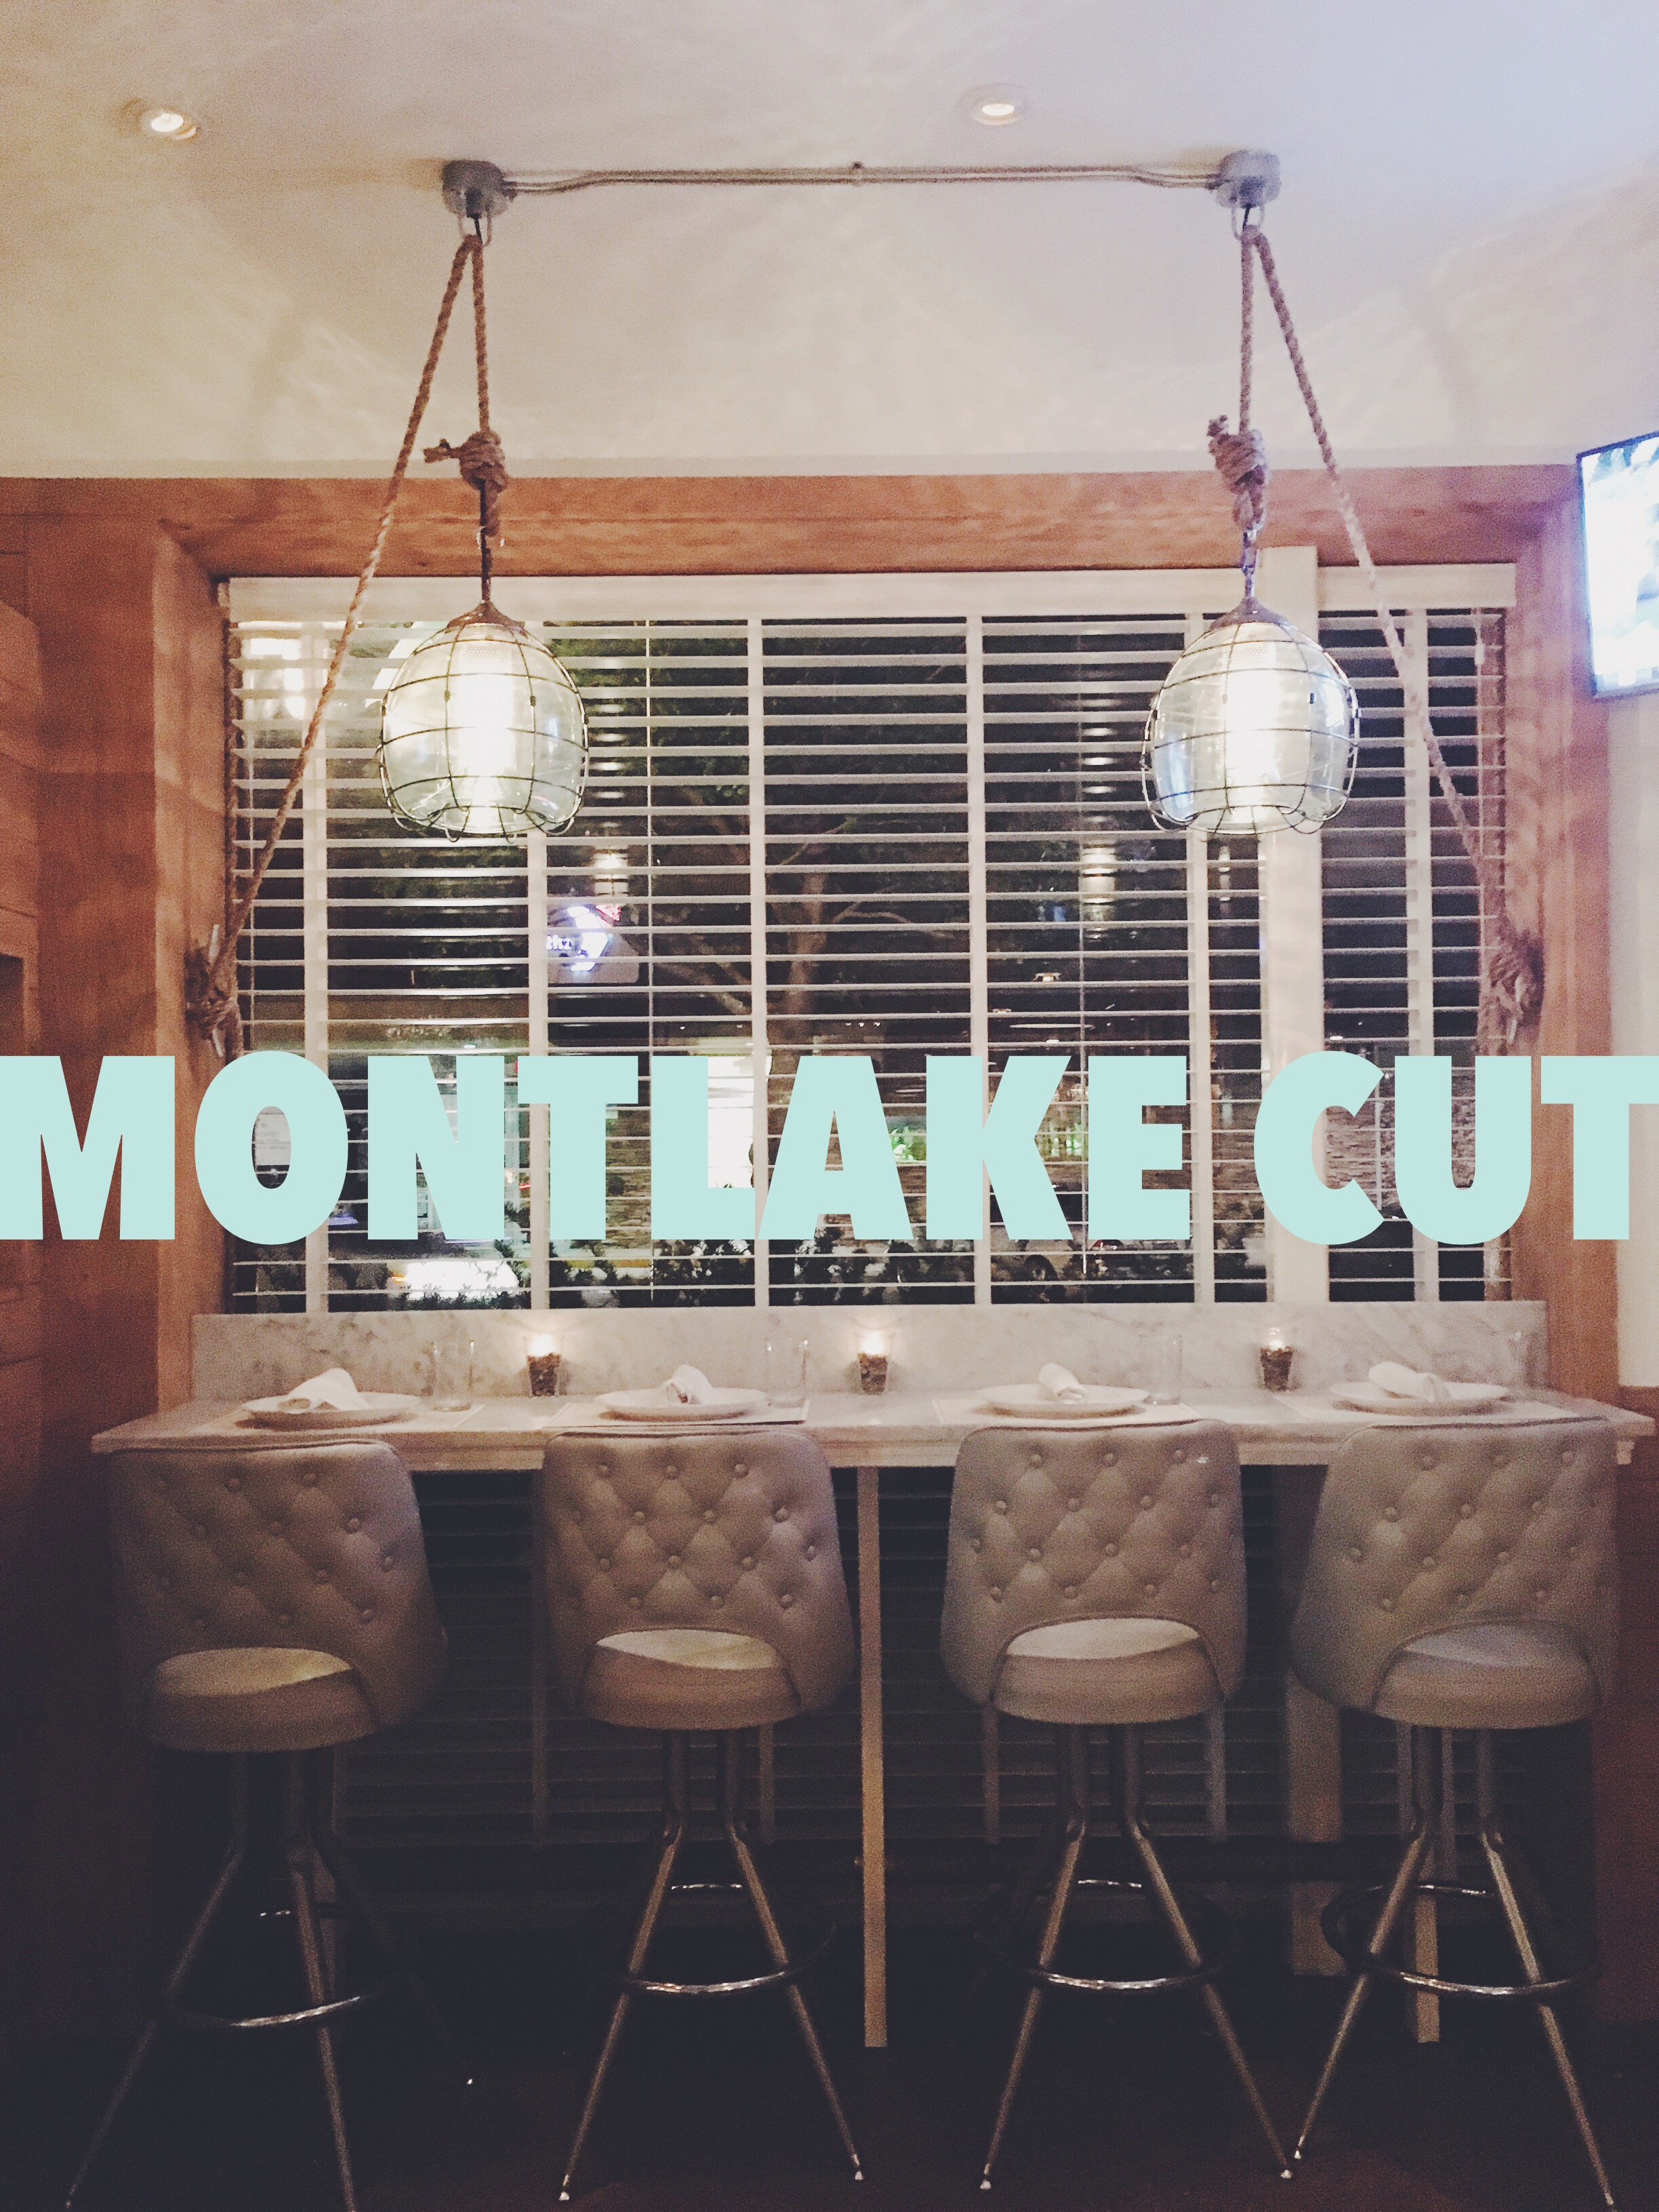 montlake cut -- image by foodbitch